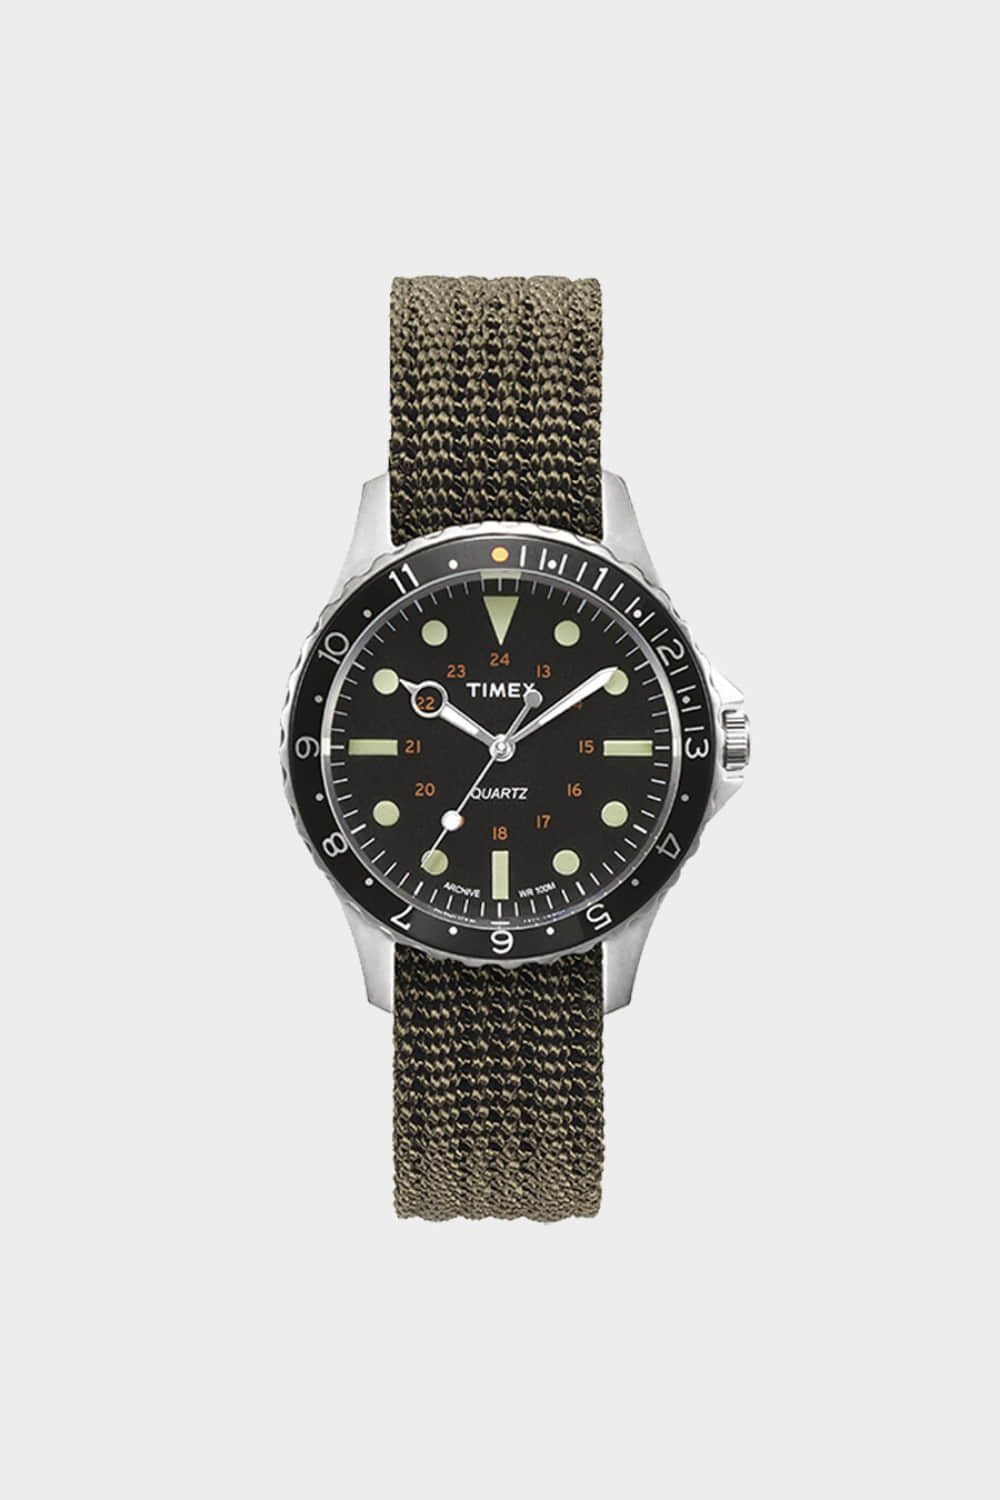 TIMEX ARCHIVE NAVI 38MM BLACK (TMTW2R73300)